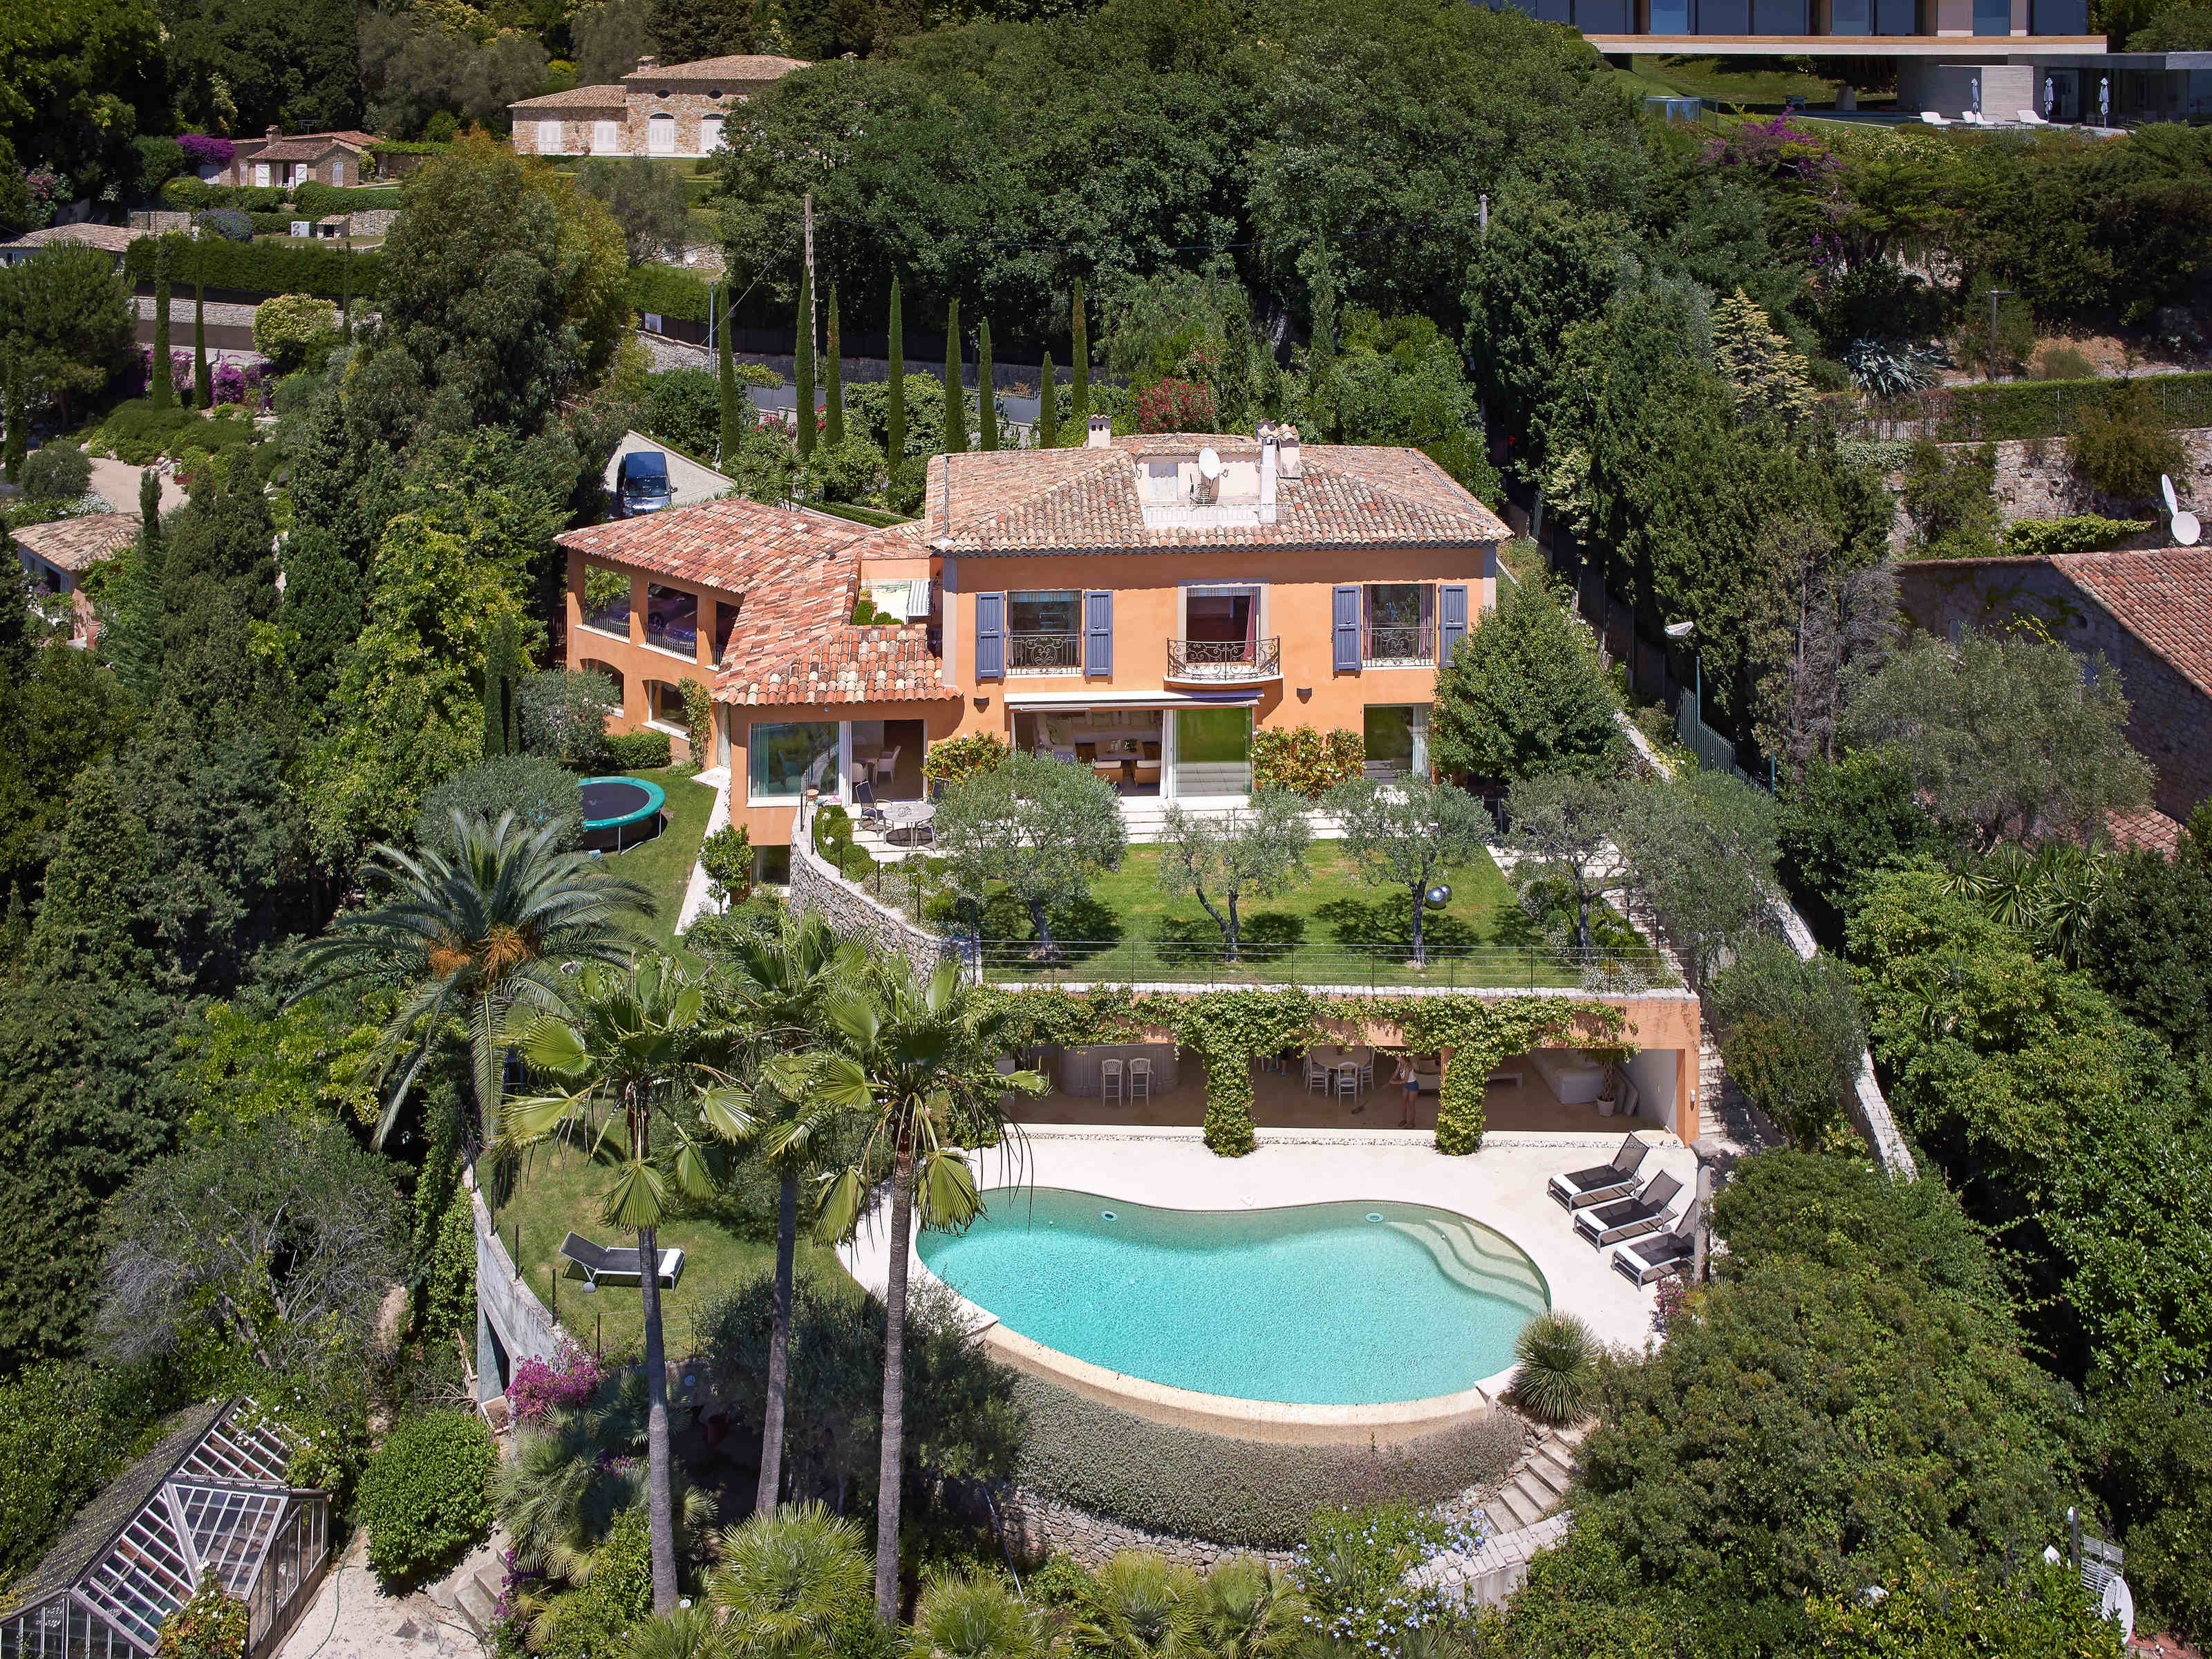 Single Family Home for Sale at Luxury Villa for sale in Cannes La Californie South of France French riviera Cannes, Provence-Alpes-Cote D'Azur 06400 France